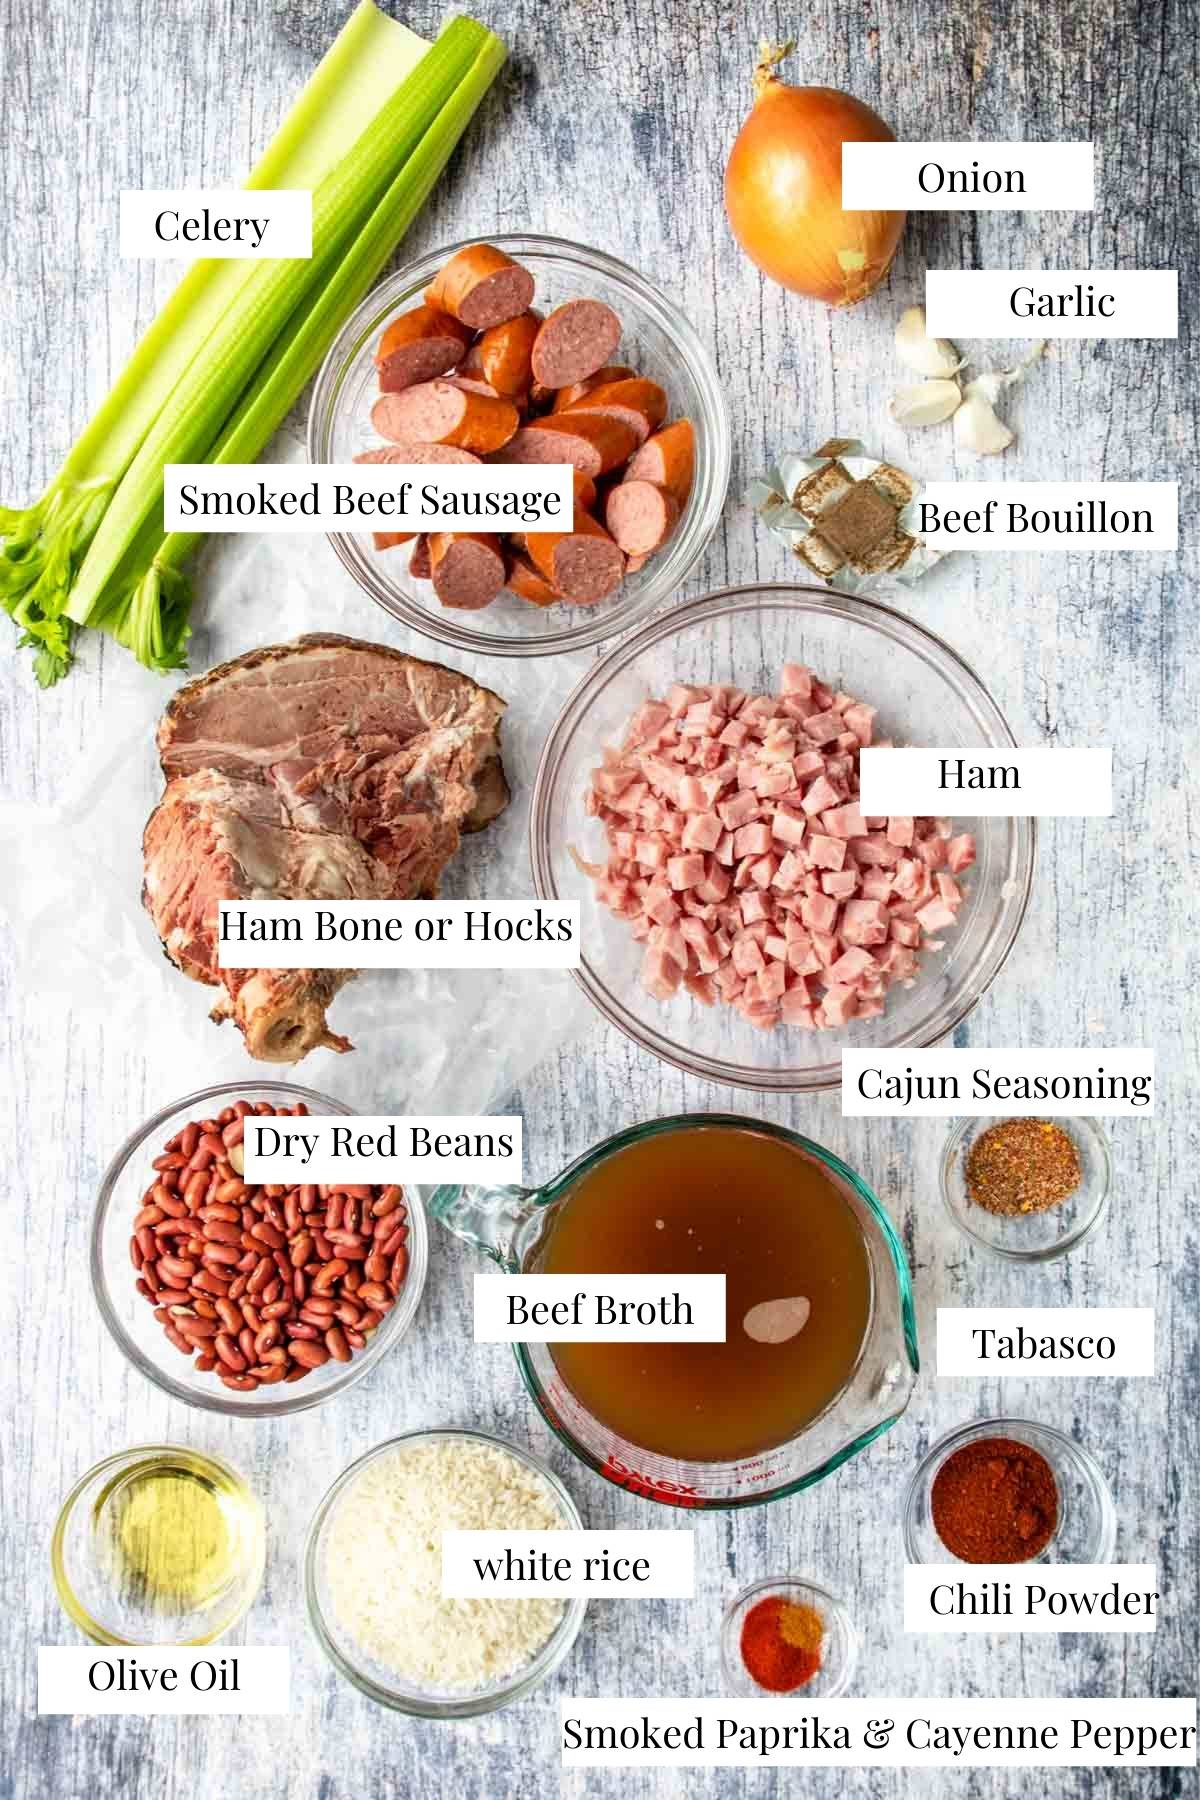 beans and rice ingredients on a table with text labels